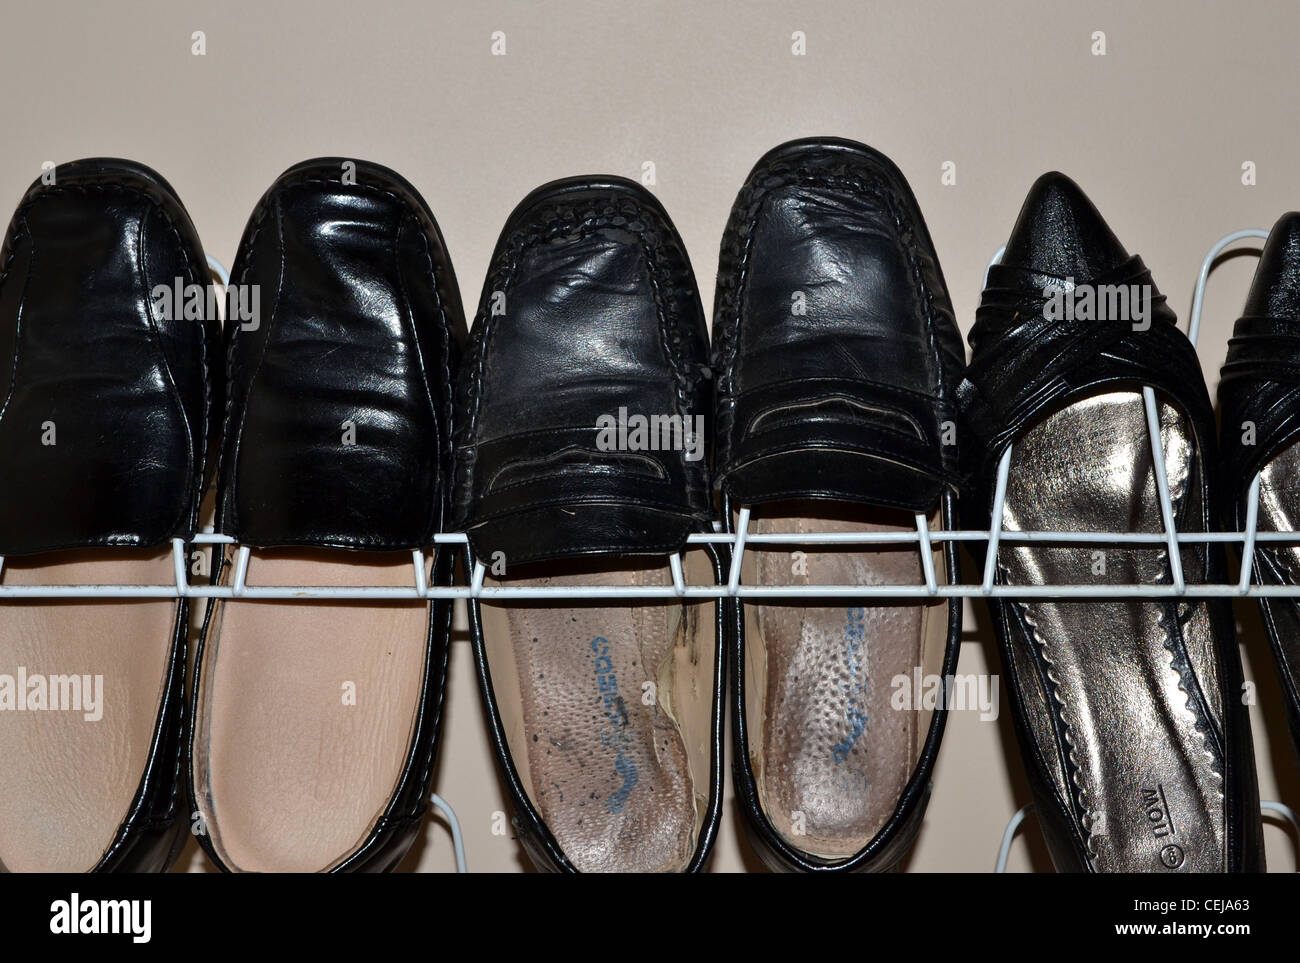 shoe rack with womens work shoes - Stock Image